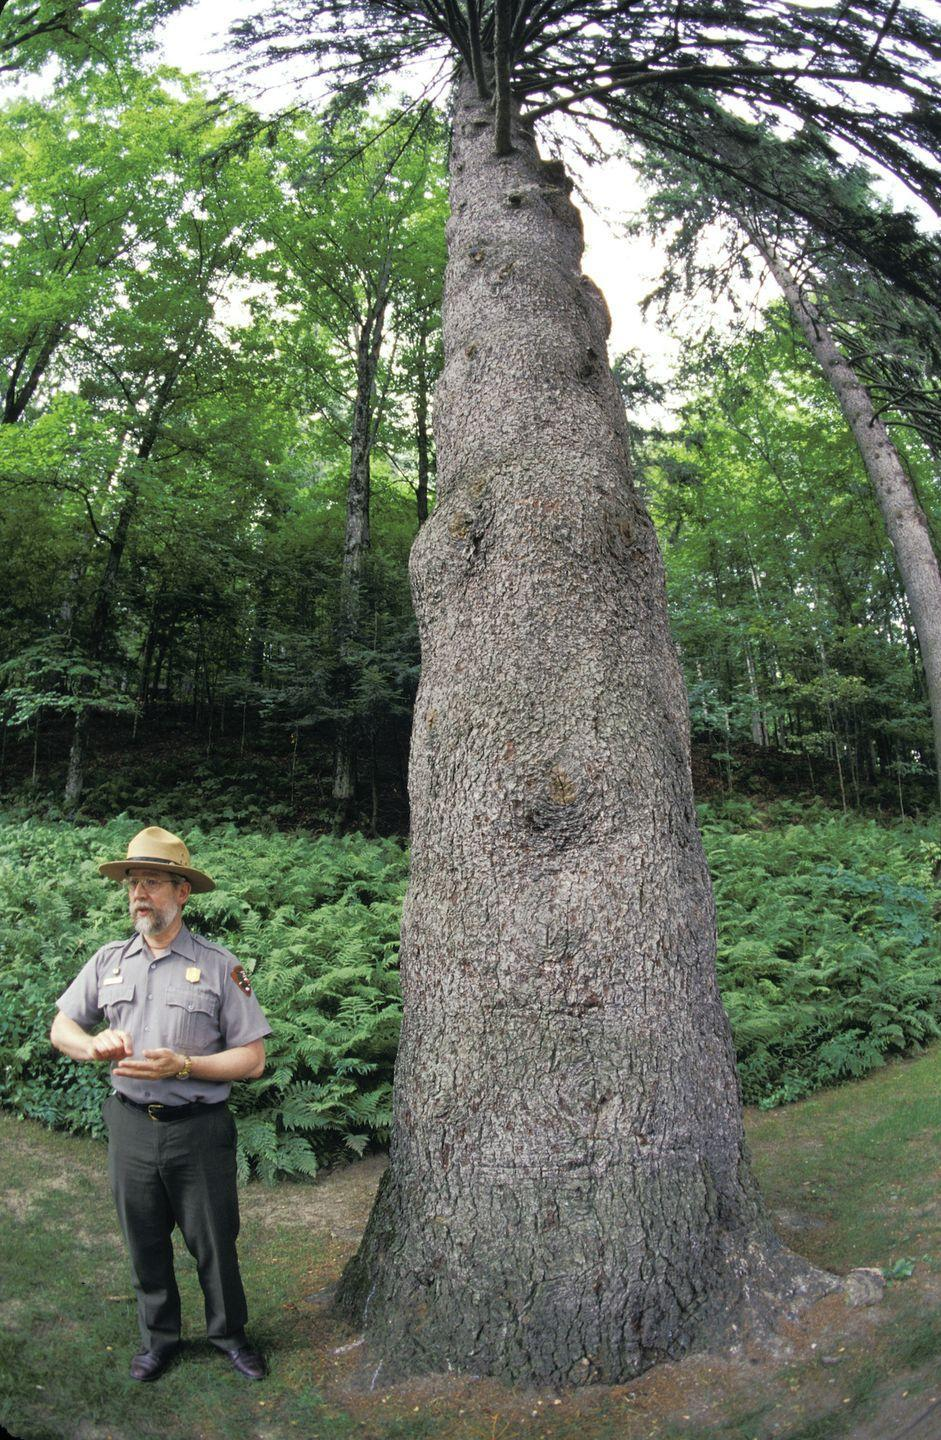 """<p><a href=""""https://www.nps.gov/mabi/index.htm"""" rel=""""nofollow noopener"""" target=""""_blank"""" data-ylk=""""slk:Marsh-Billings-Rockefeller National Historical Park"""" class=""""link rapid-noclick-resp""""><strong>Marsh-Billings-Rockefeller National Historical Park </strong></a></p><p>Vermont is filled with outstanding outdoor space, and its only national park is just one spot where you can see their amazing forestry. </p>"""